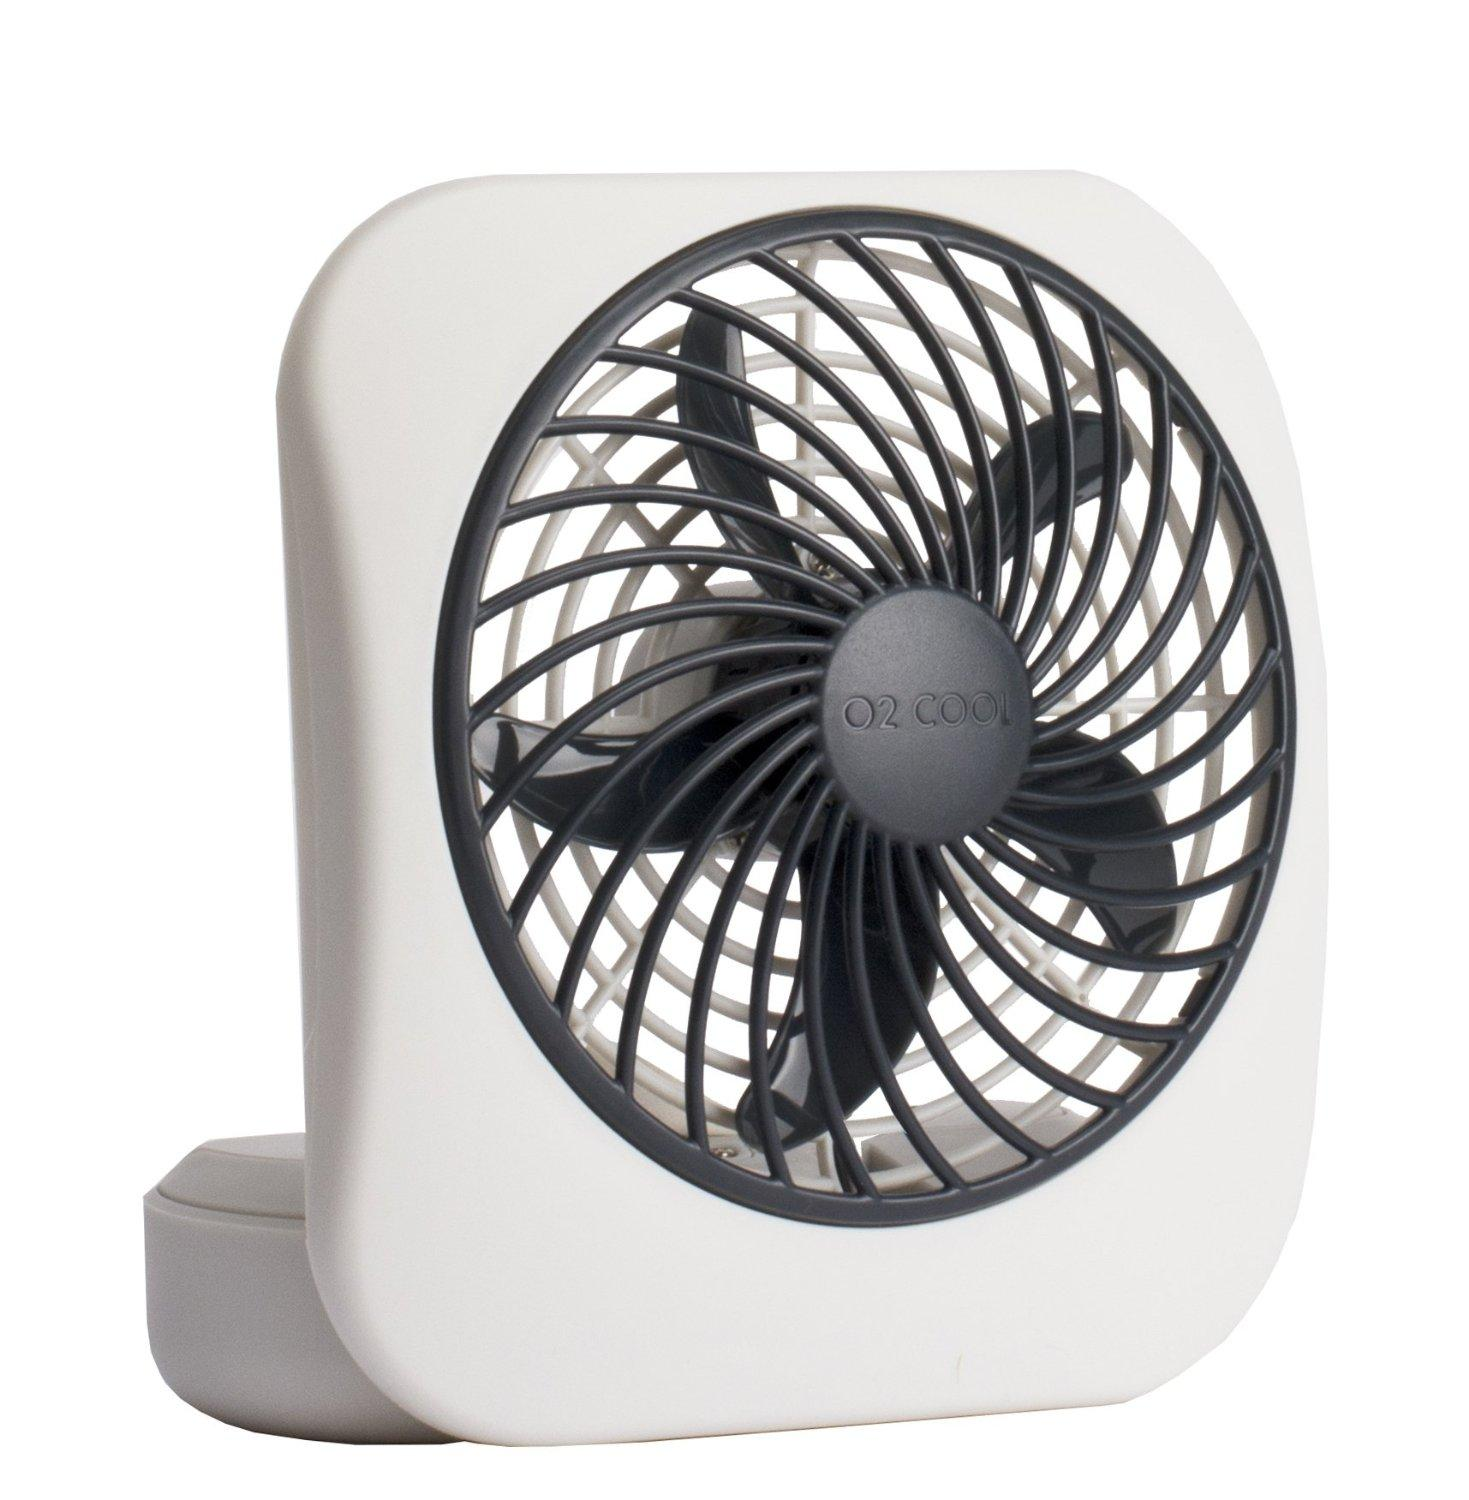 "$6.88 O2COOL 5"" Battery Operated Portable Fan in WHITE/GREY"